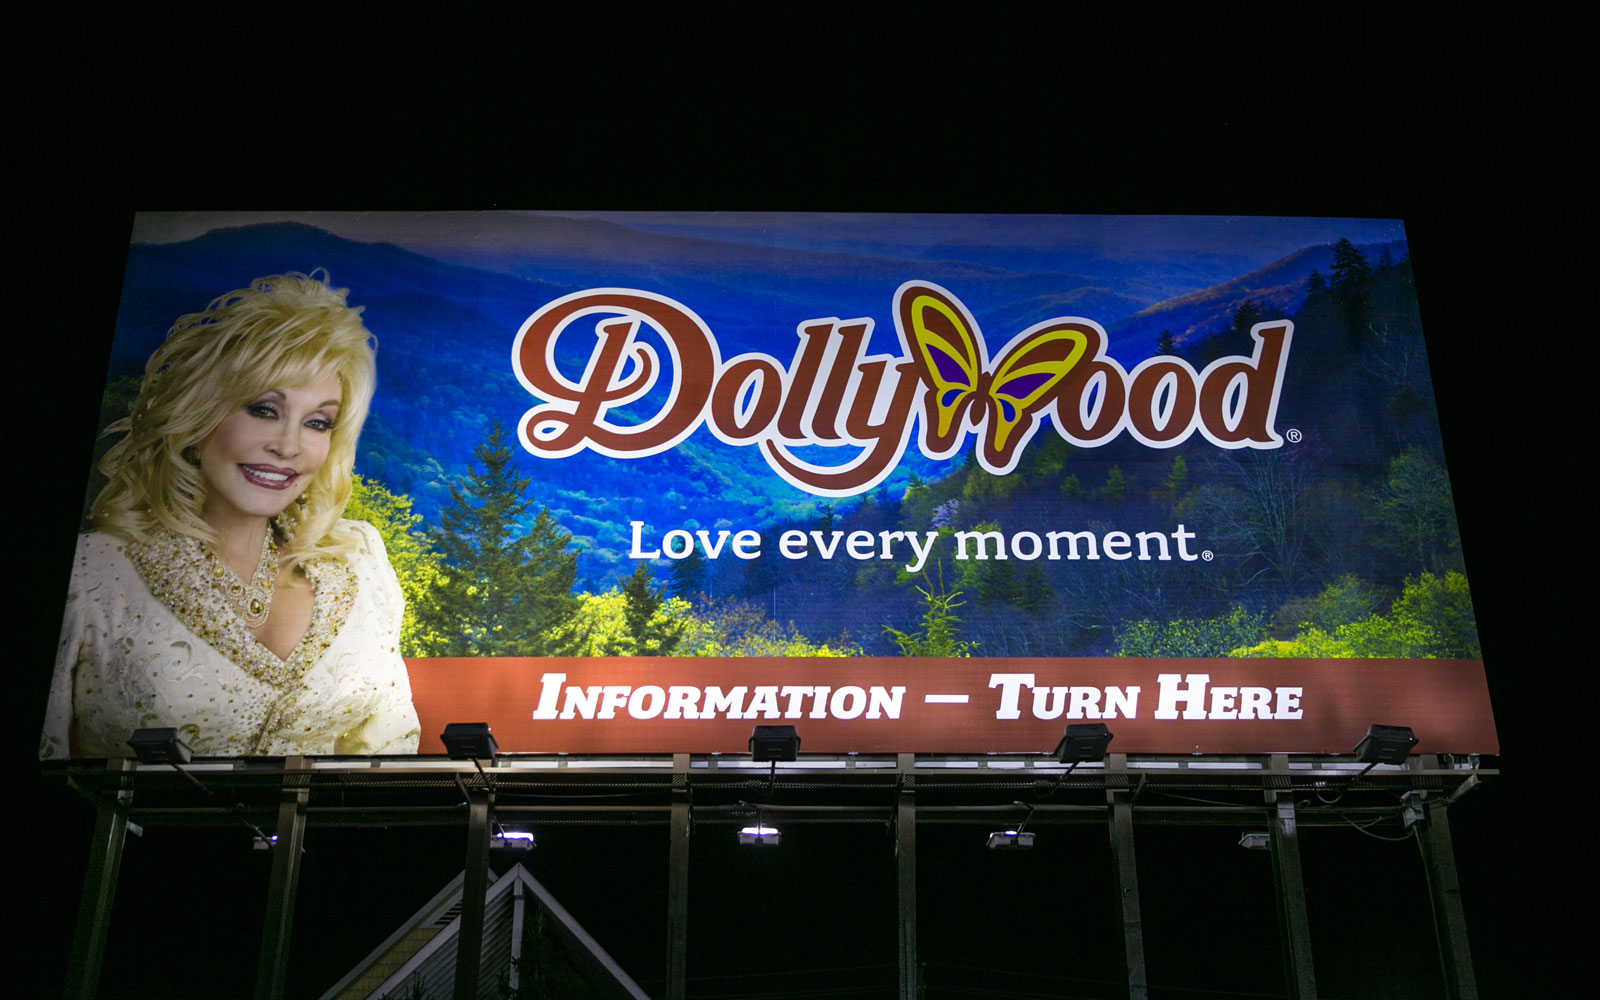 A sign for Dollywood.